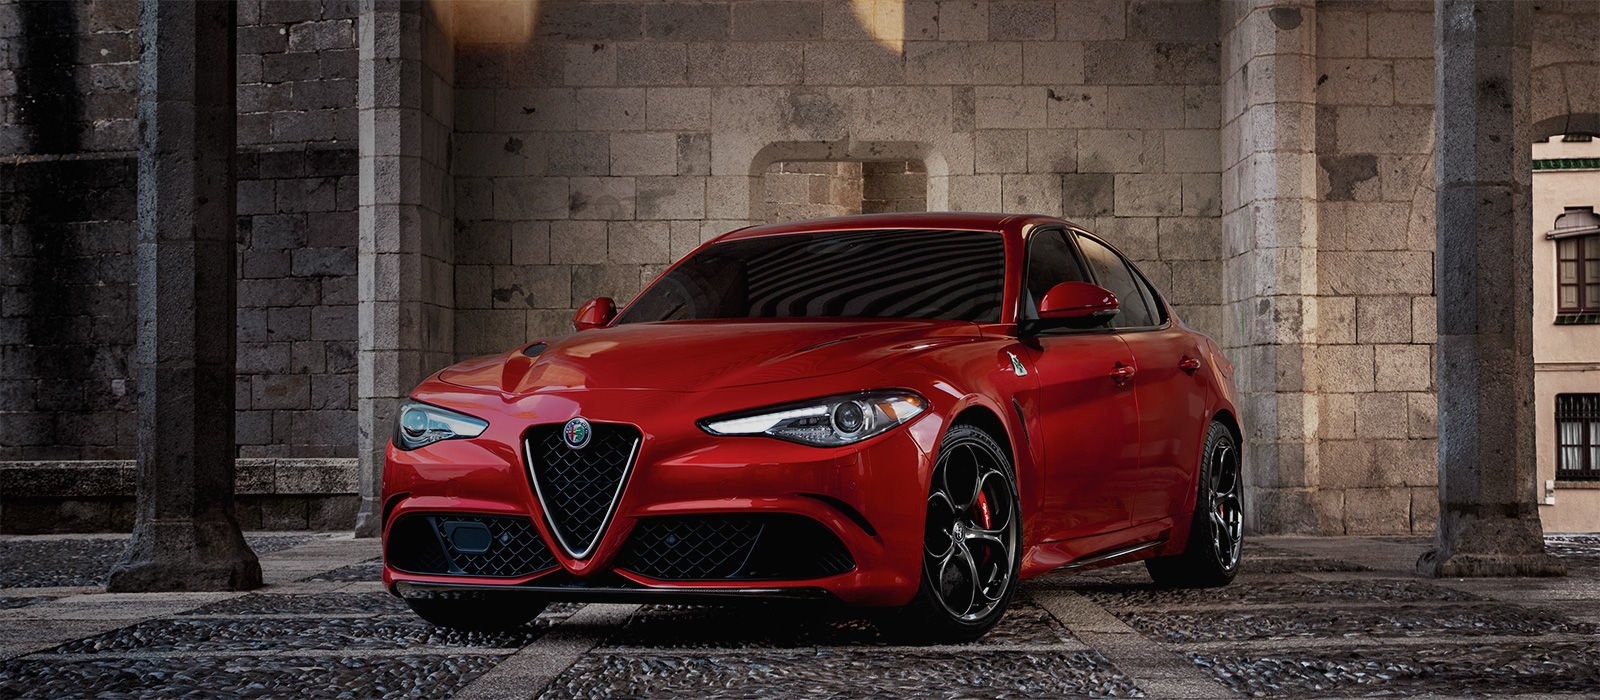 New Alfa Romeo Giulia Quadrifoglio Buy Lease And Finance Offers - New alfa romeo for sale